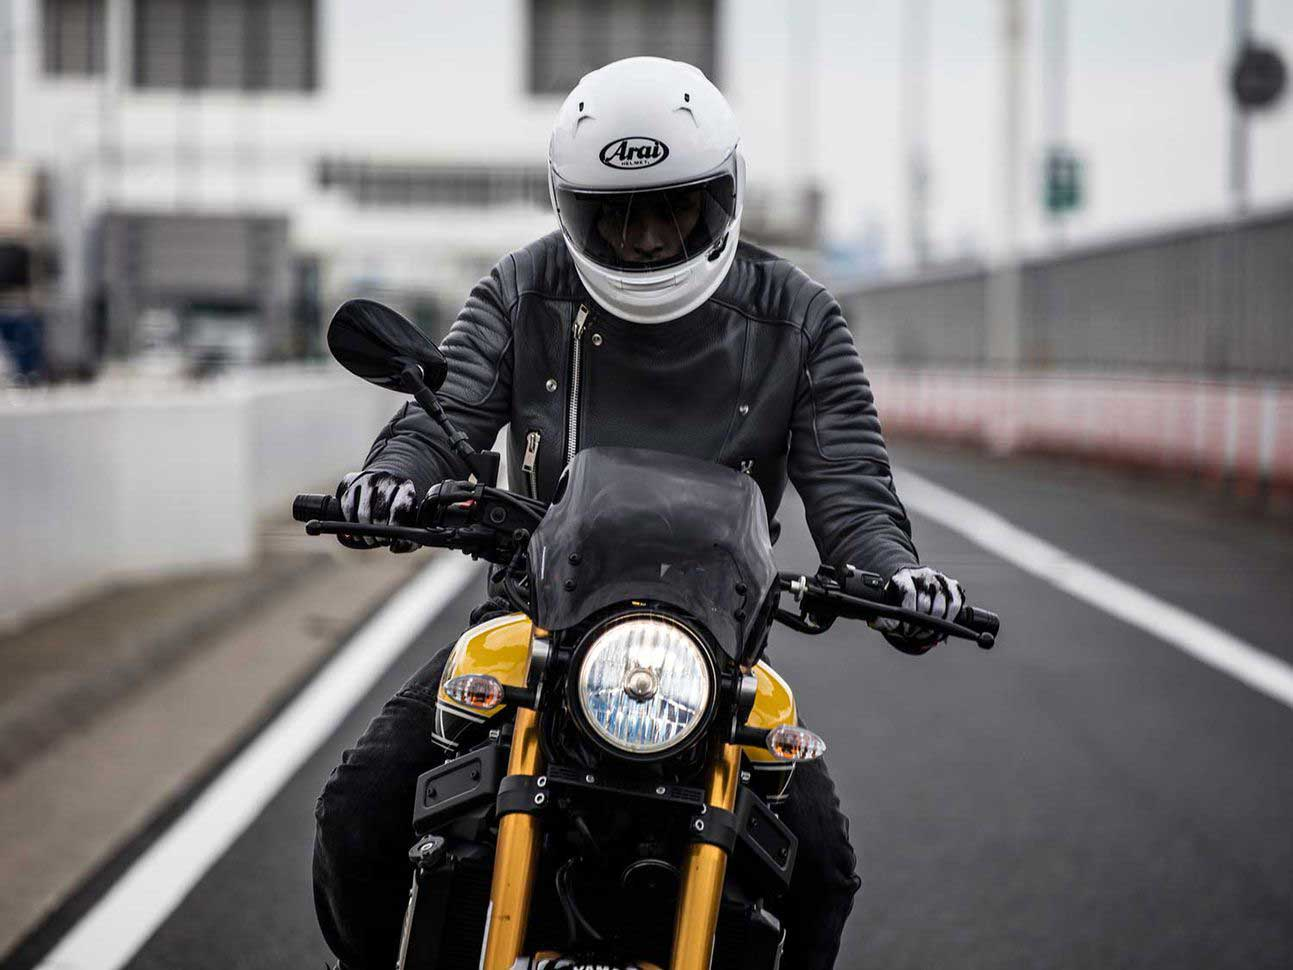 A contrasting color or something bright, like a hi-vis piece of gear, can help other riders see you better, but always ride like other motorists don't see you.